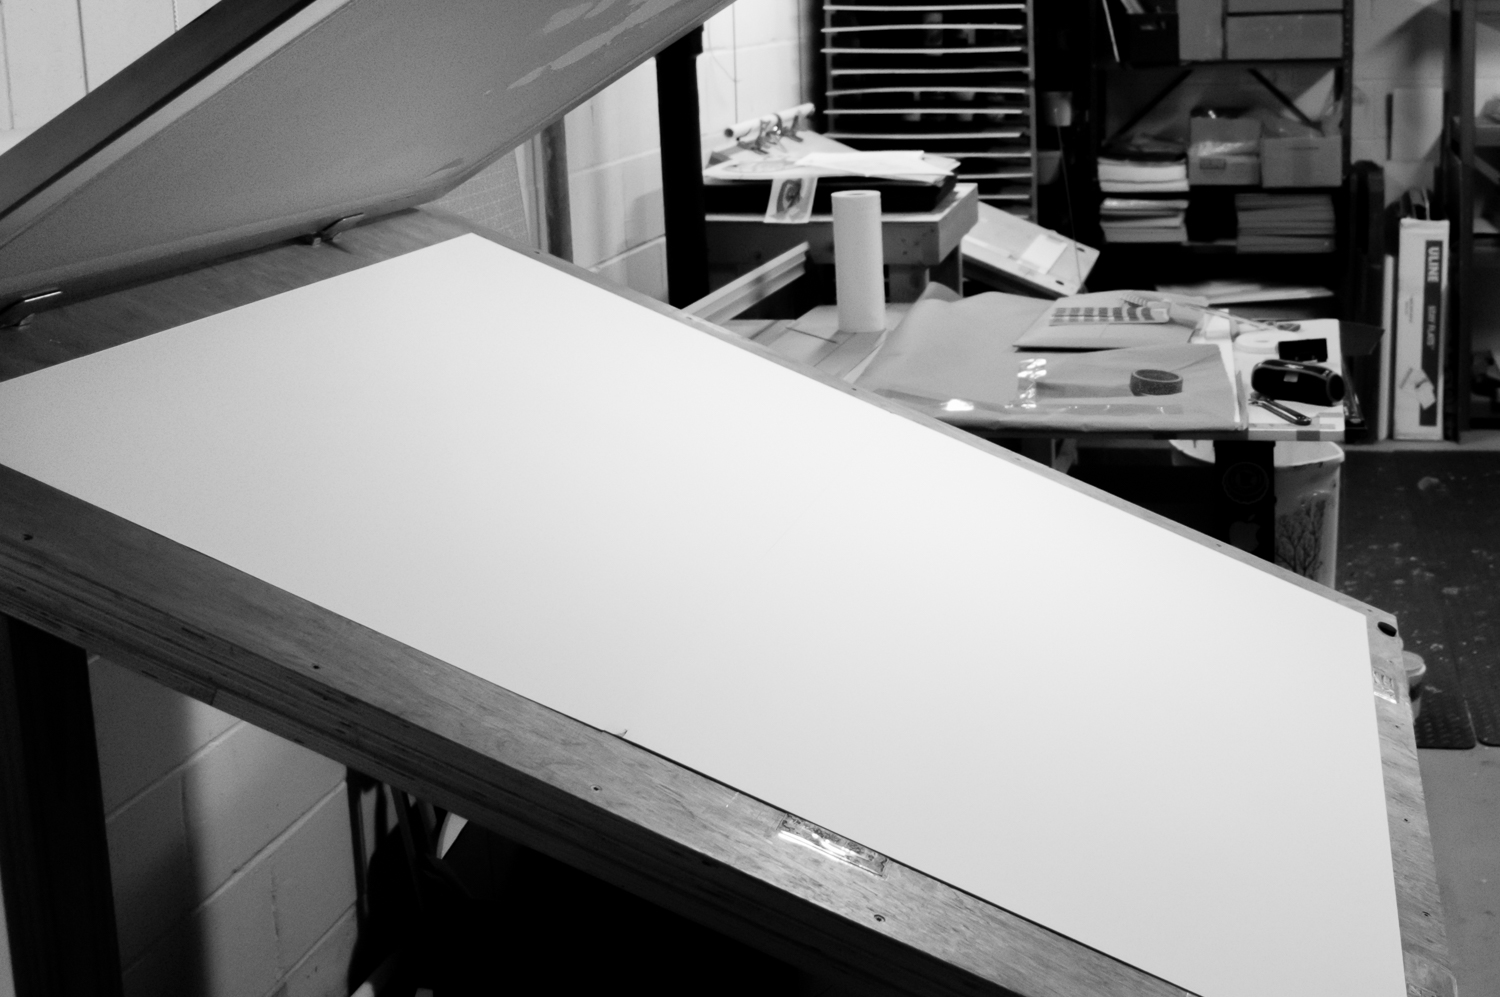 Copy of Large printing press installed in studio